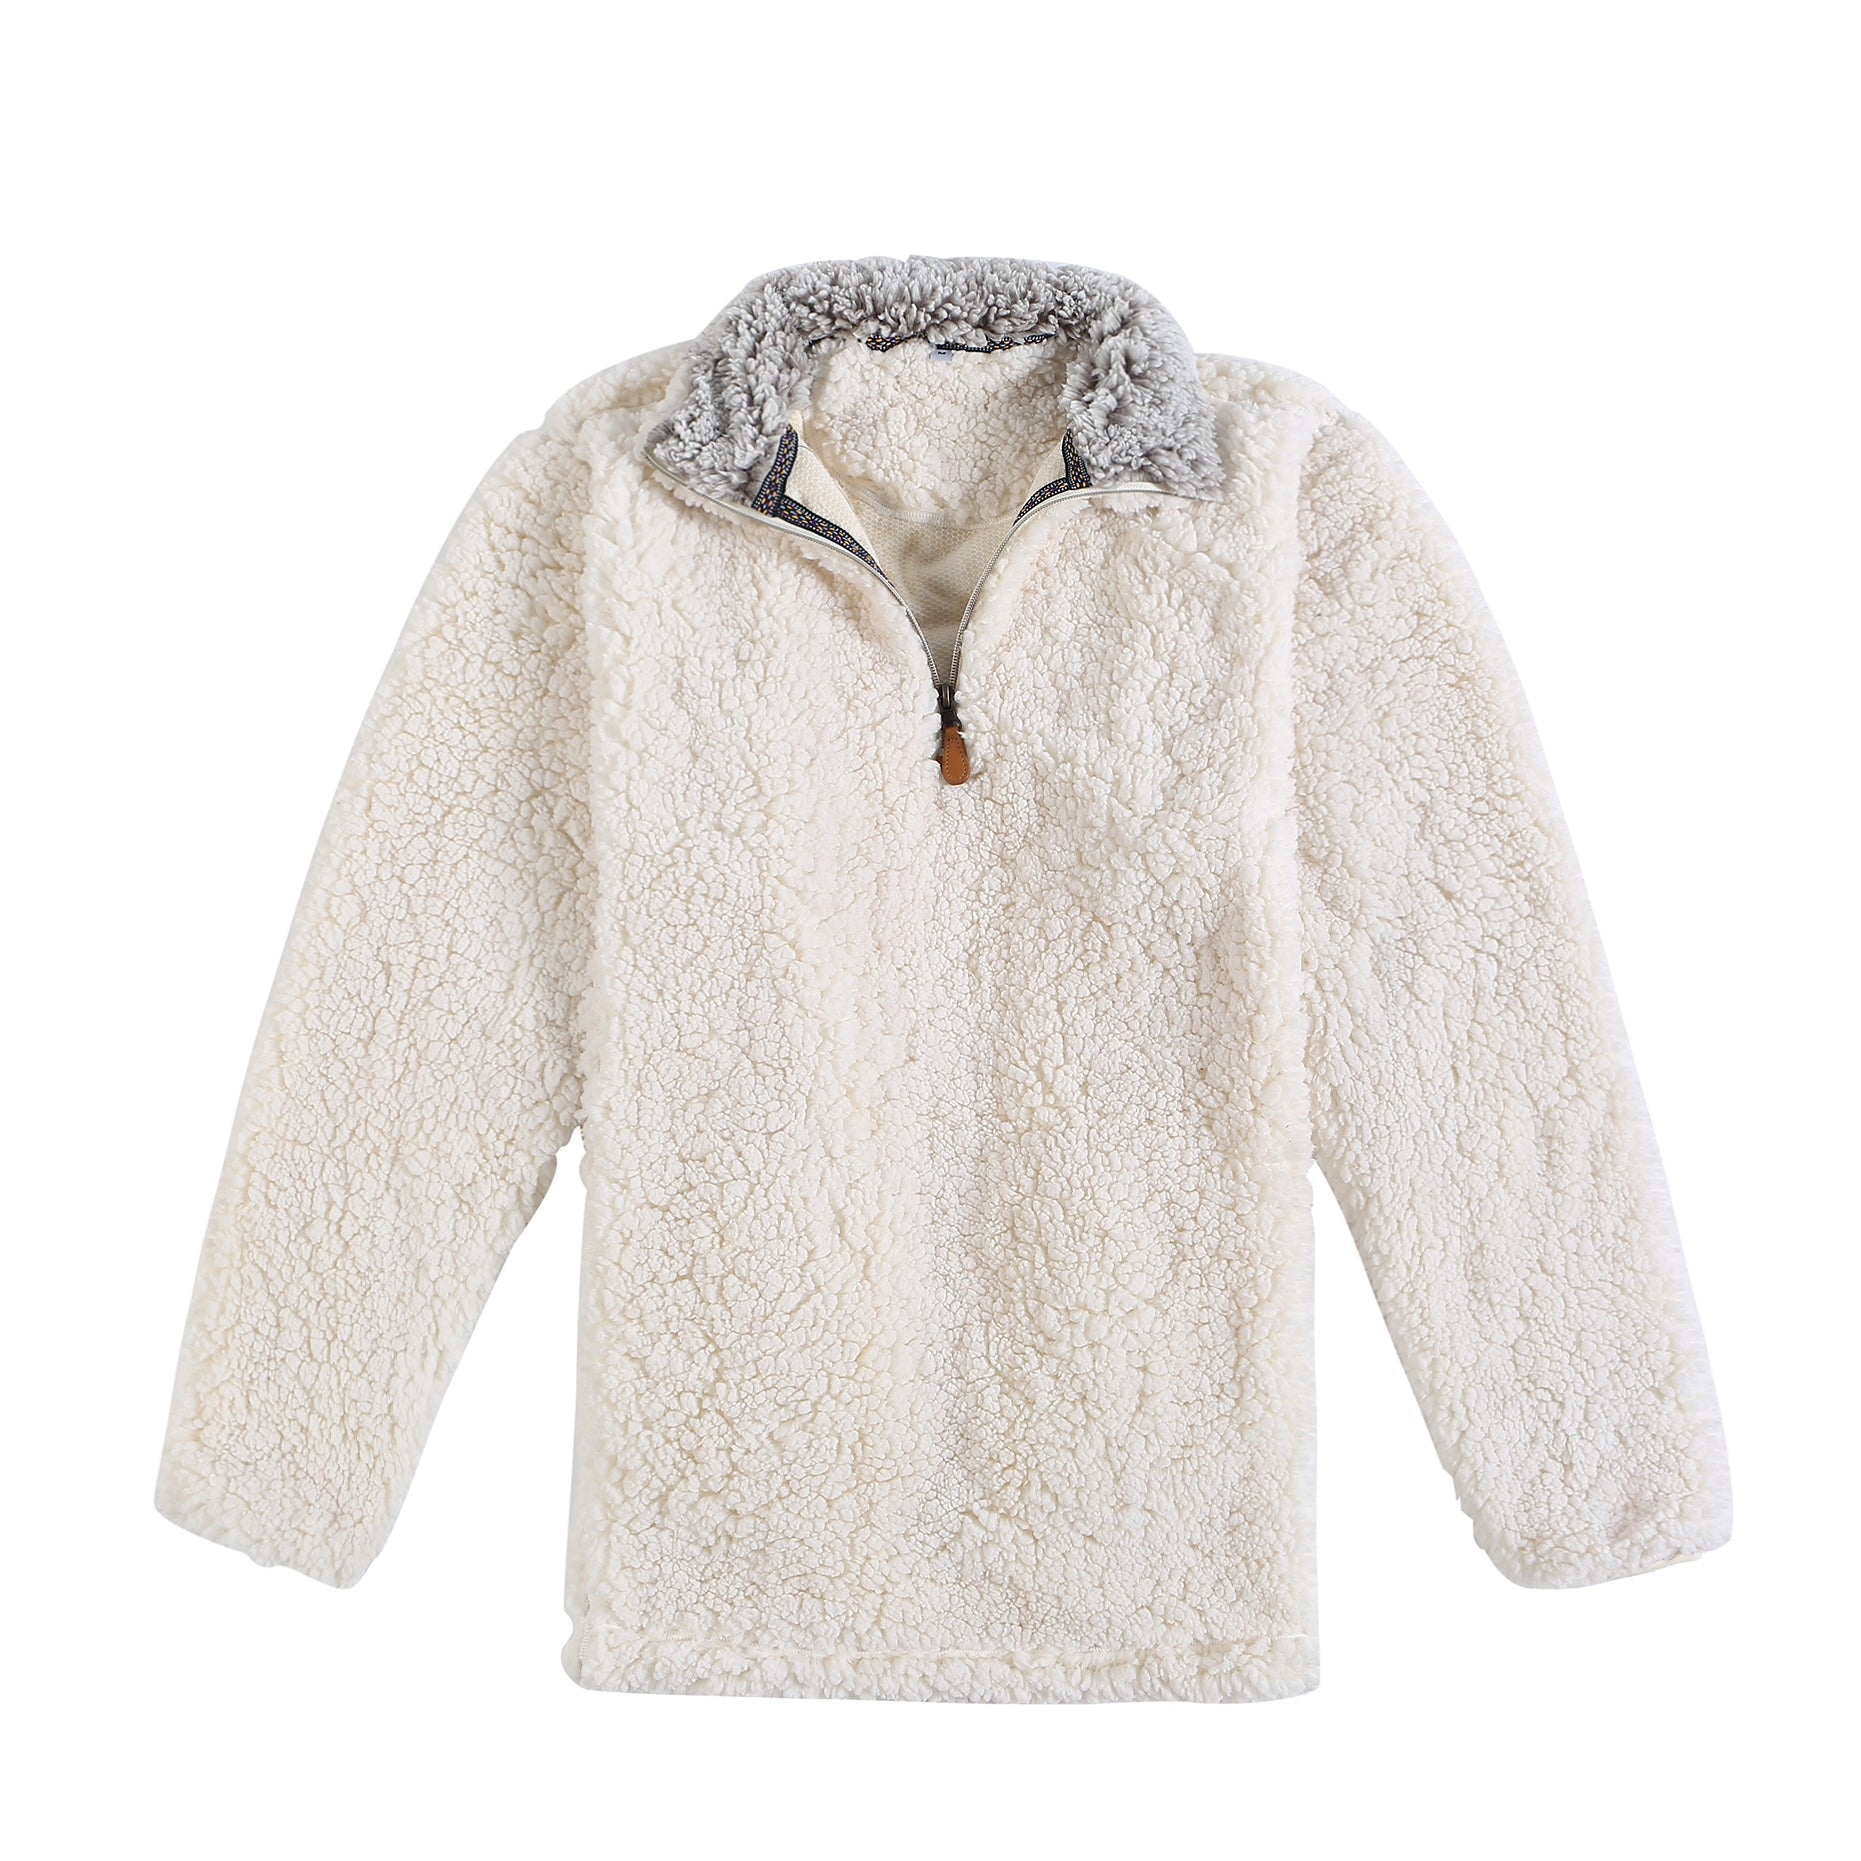 2018 Katydid Wholesale Sherpa Pull-Overs with Pockets IN STOCK & READY TO SHIP